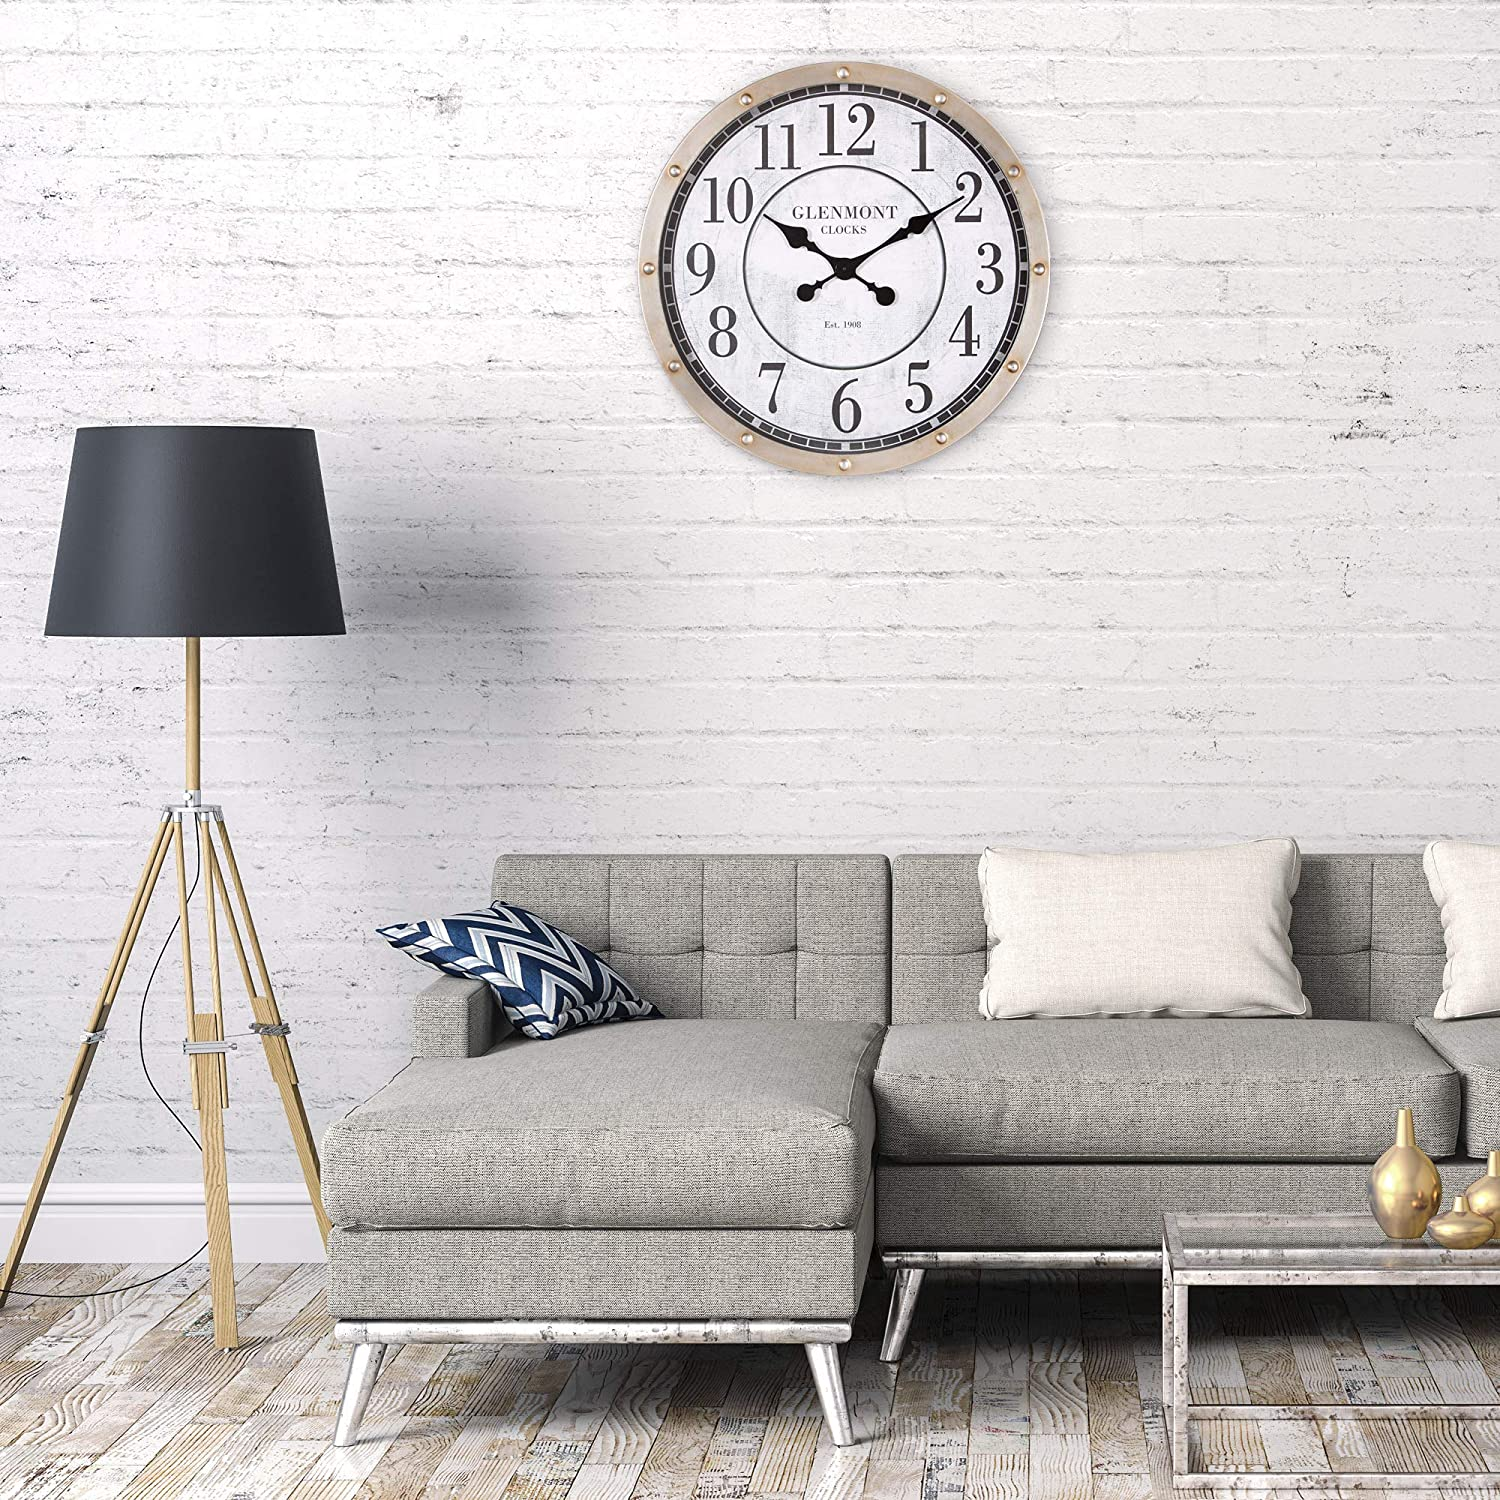 Patton Wall Decor 24 Glenmont Rustic Port Hole Brushed Silver Metal Round Wall Clock